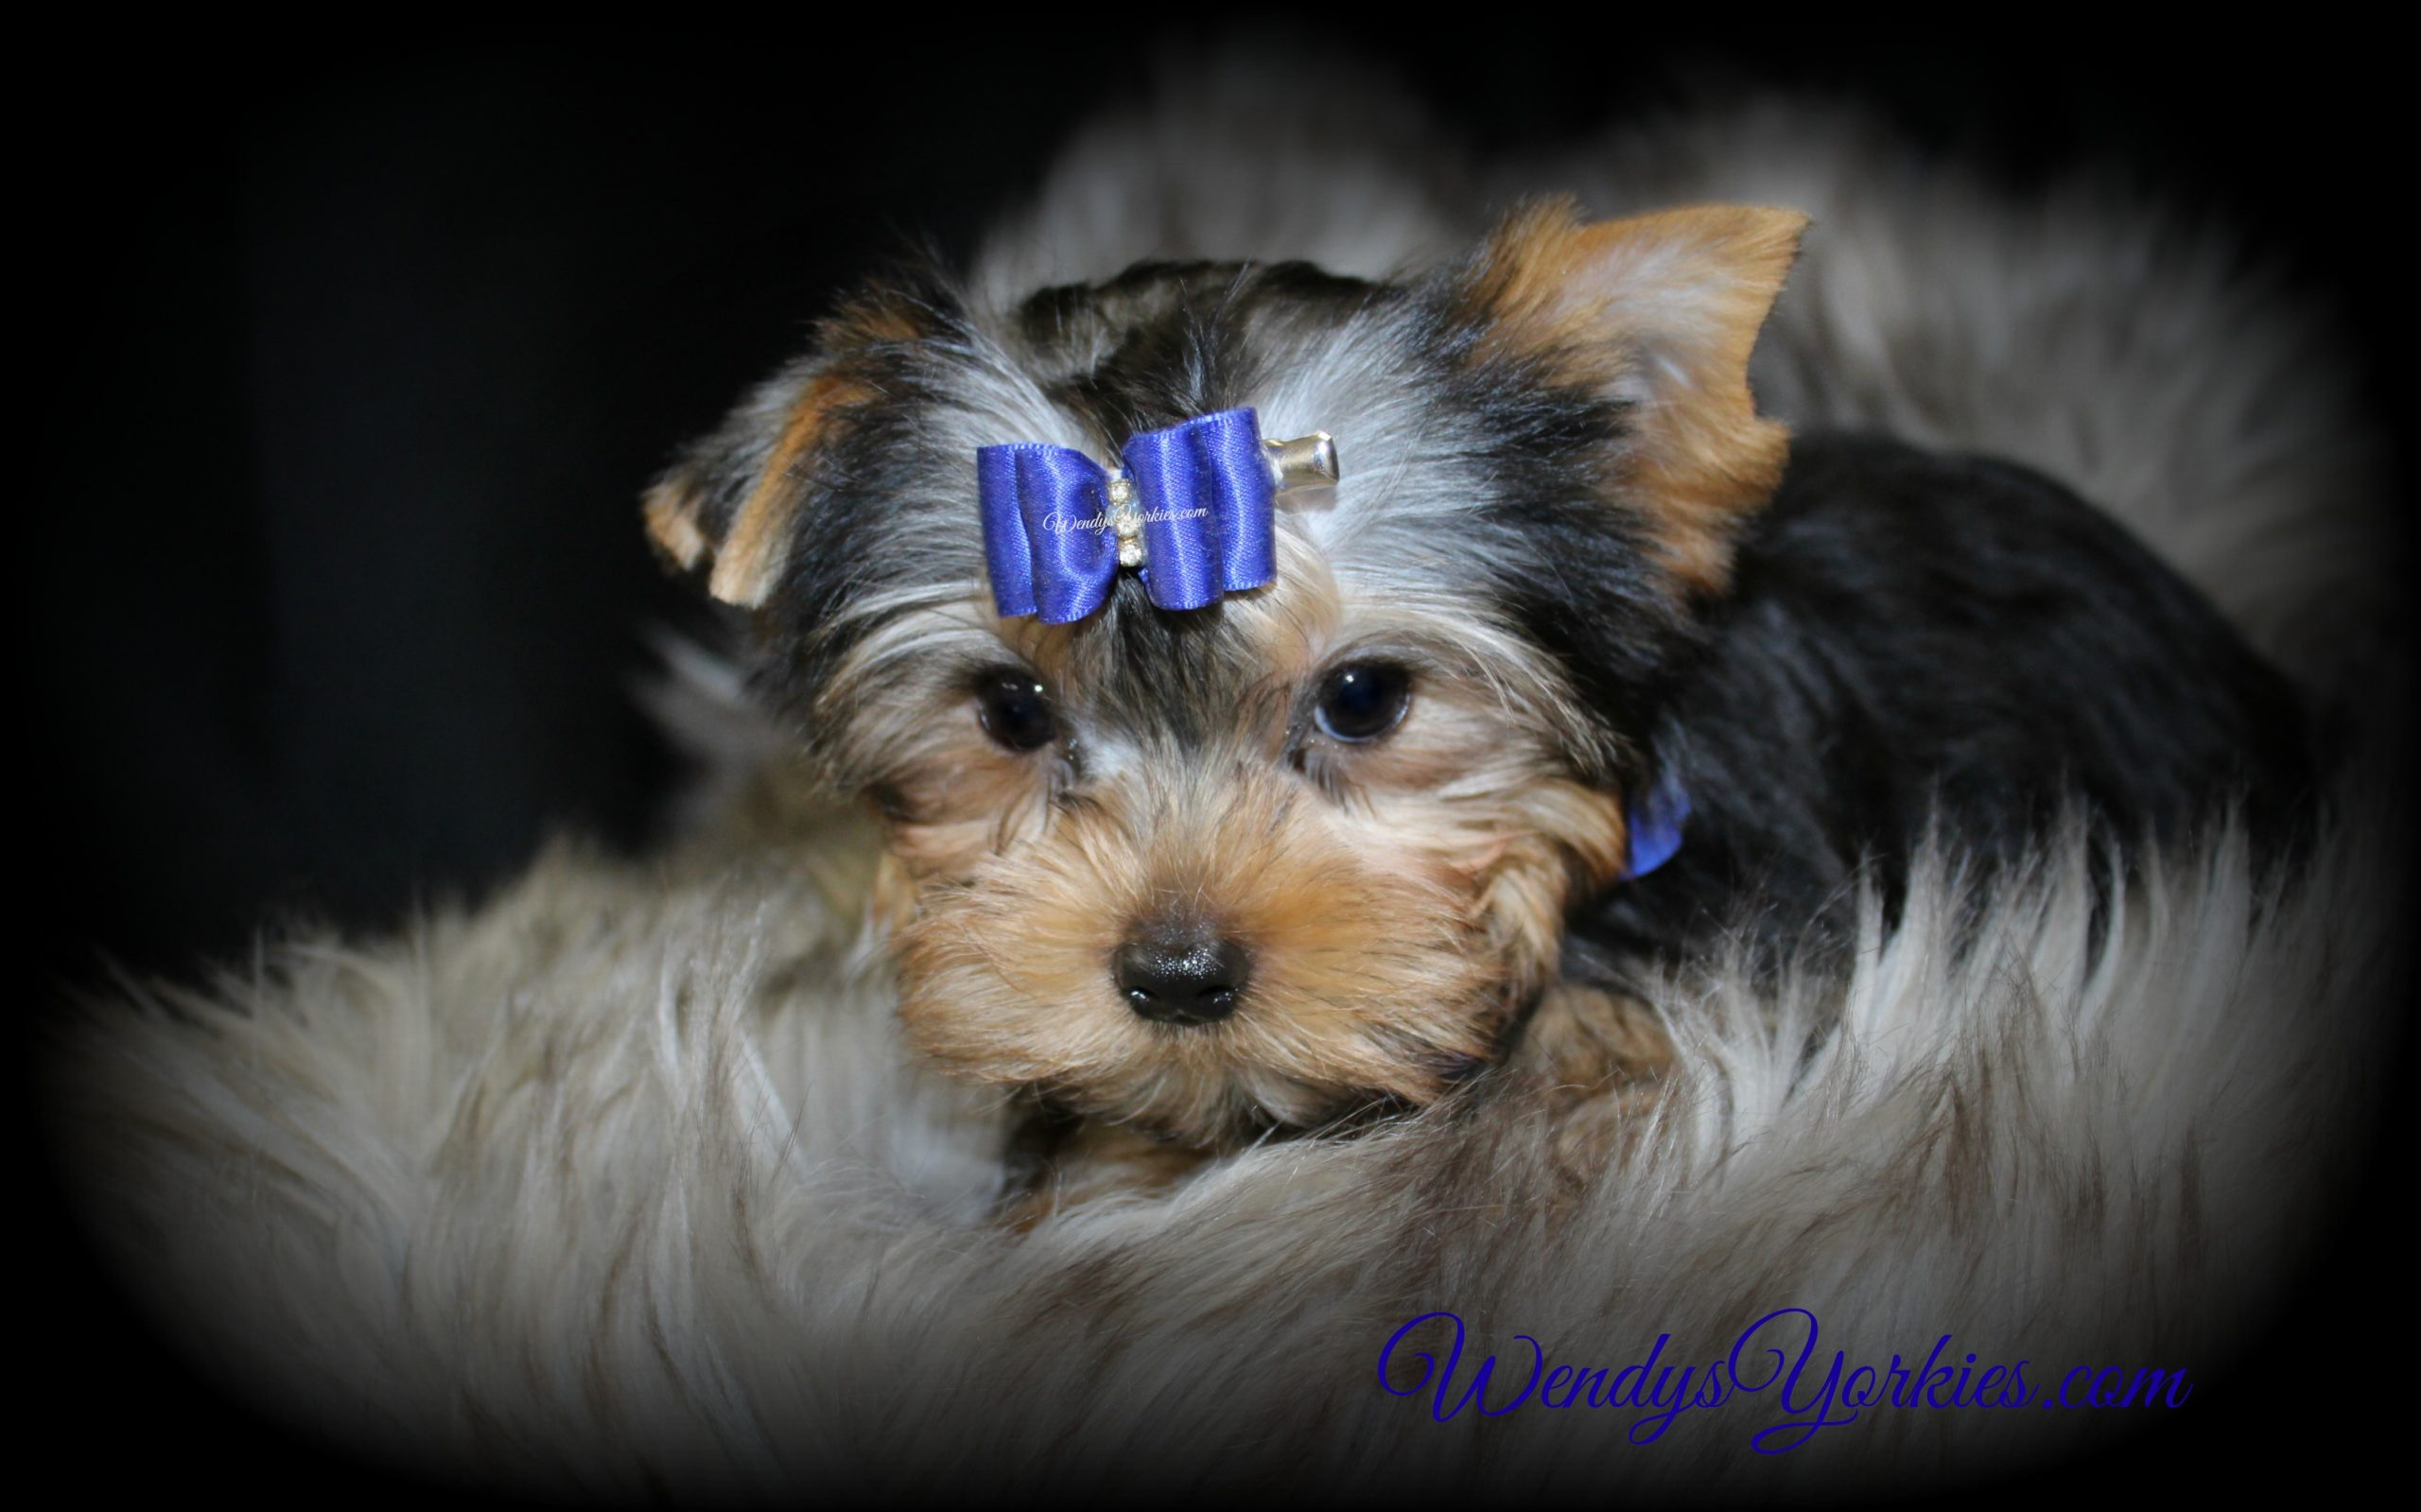 Teacup Male Yorkie puppy for sale, M1, WendysYorkies.com